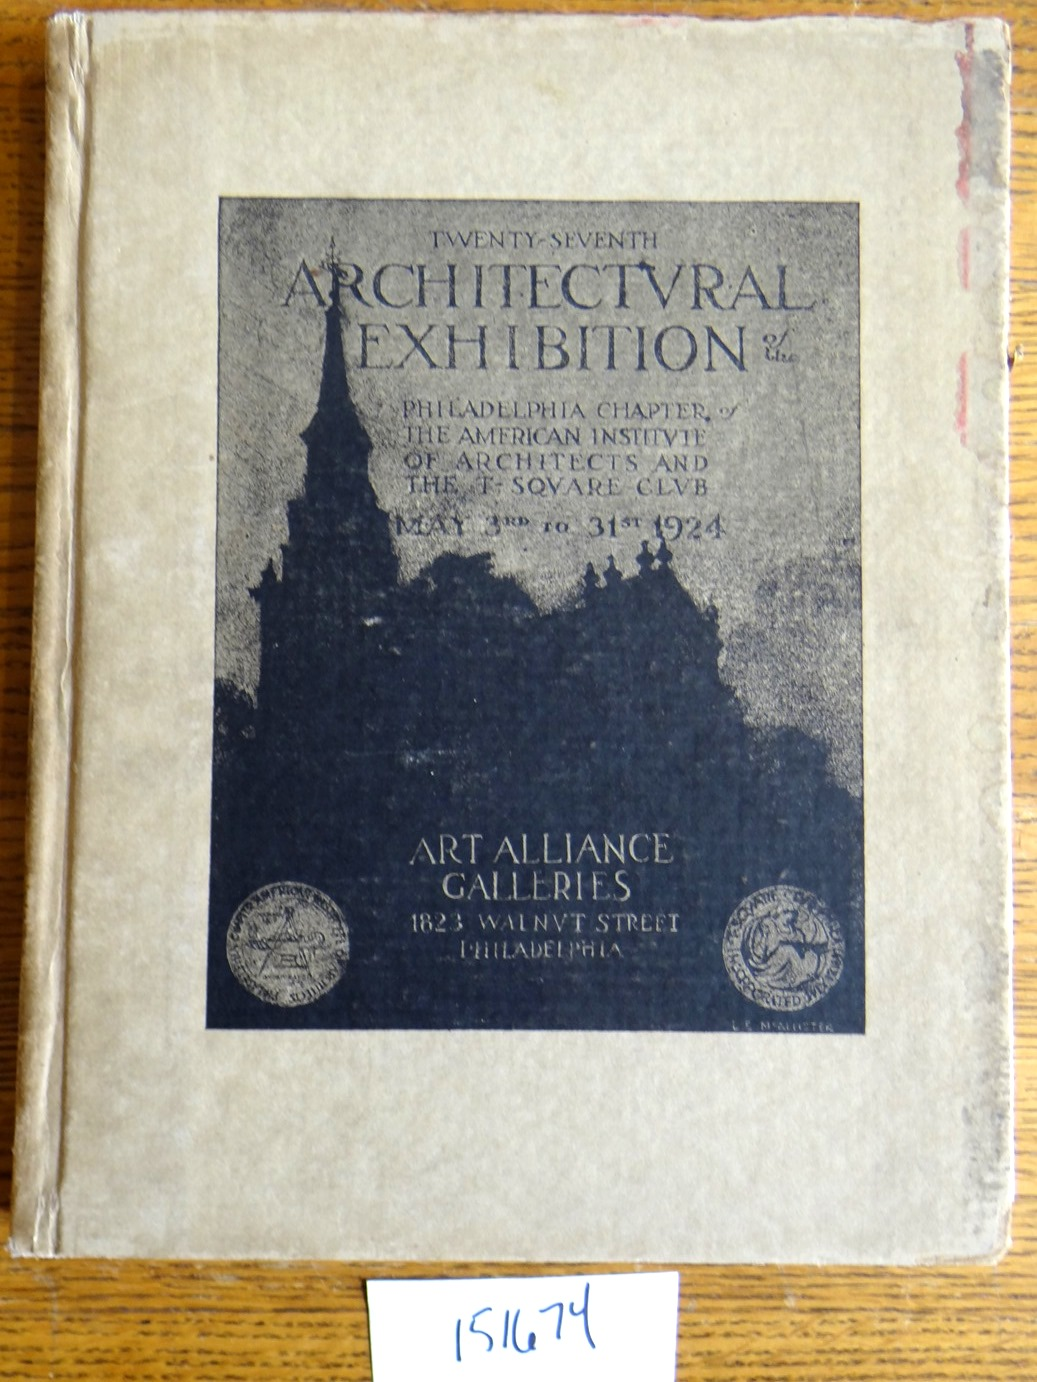 - The Year Book of the Twenty Seventh Annual Architectural Exhibition, 1924